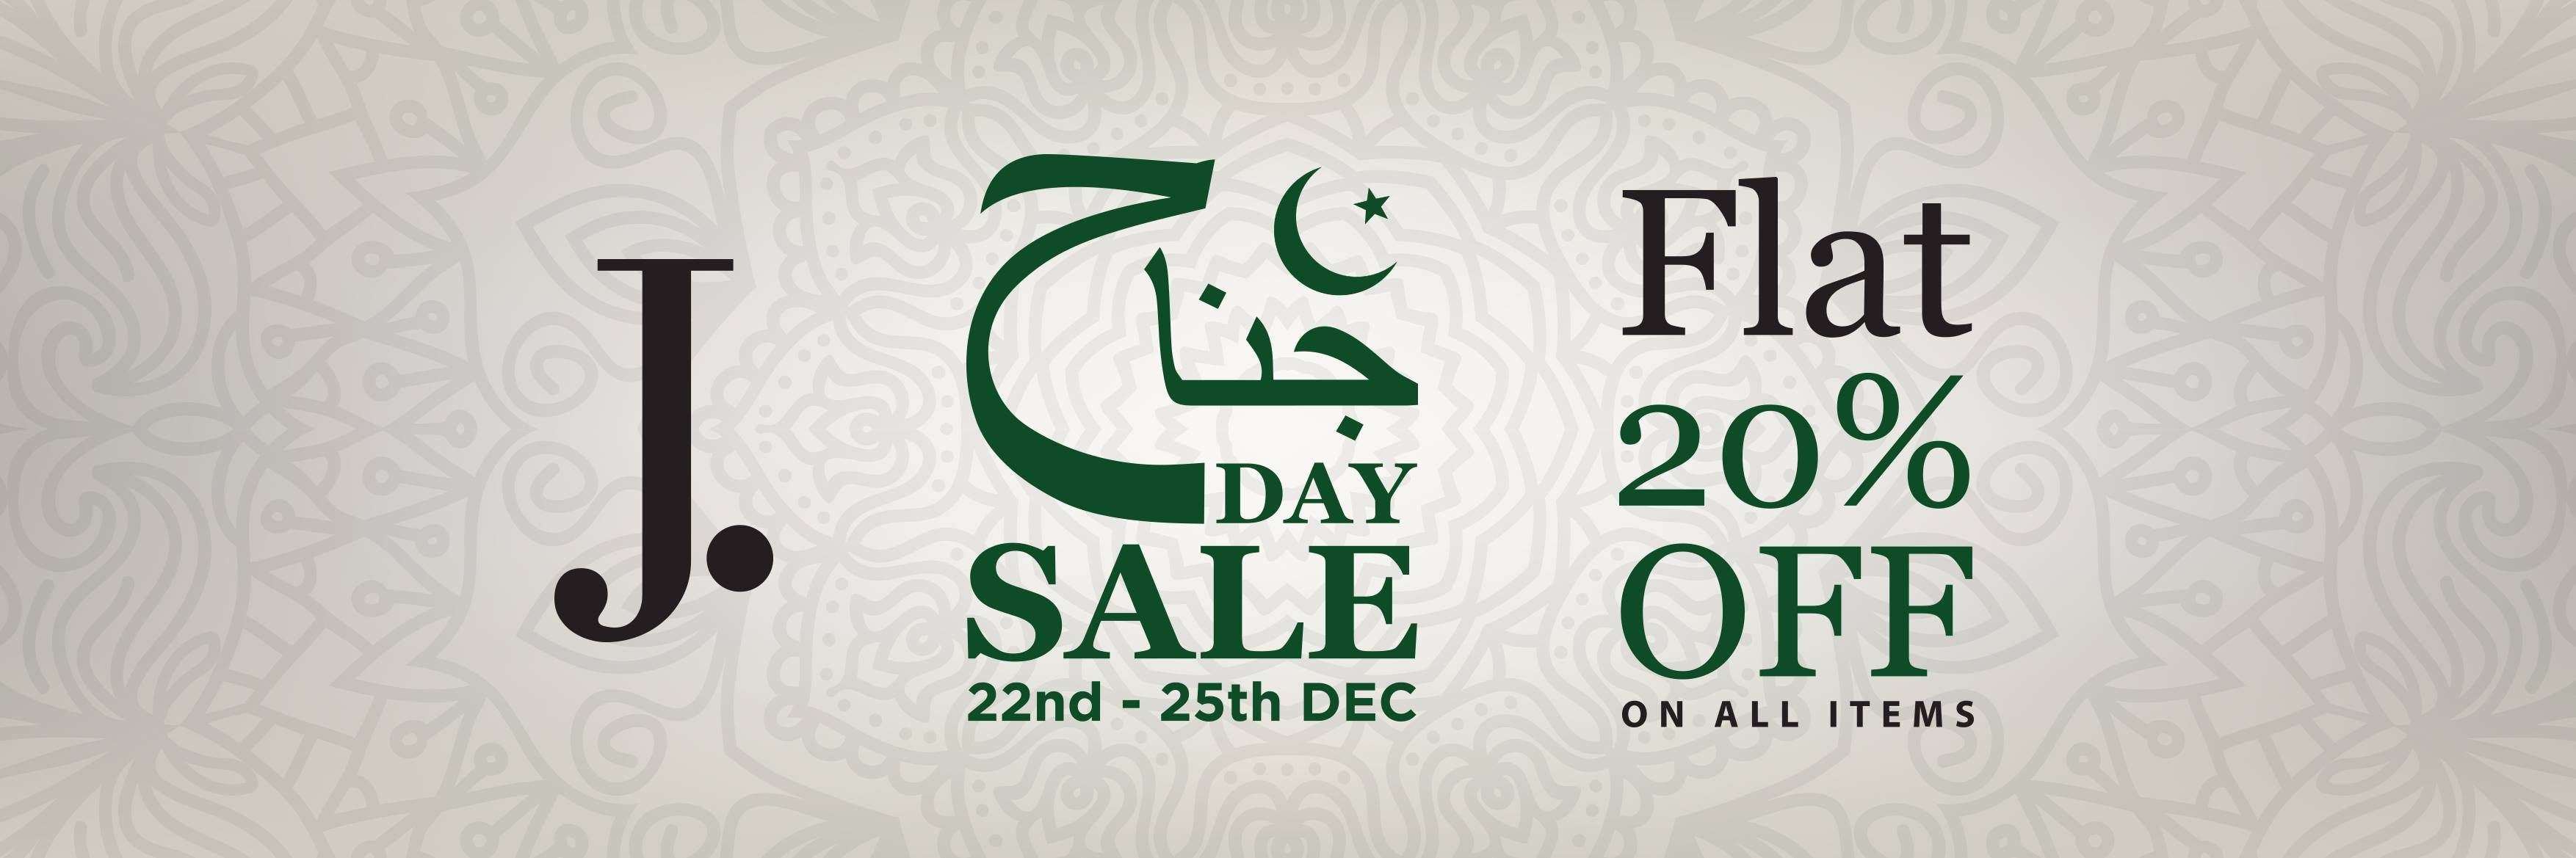 Jinnah Day Sale